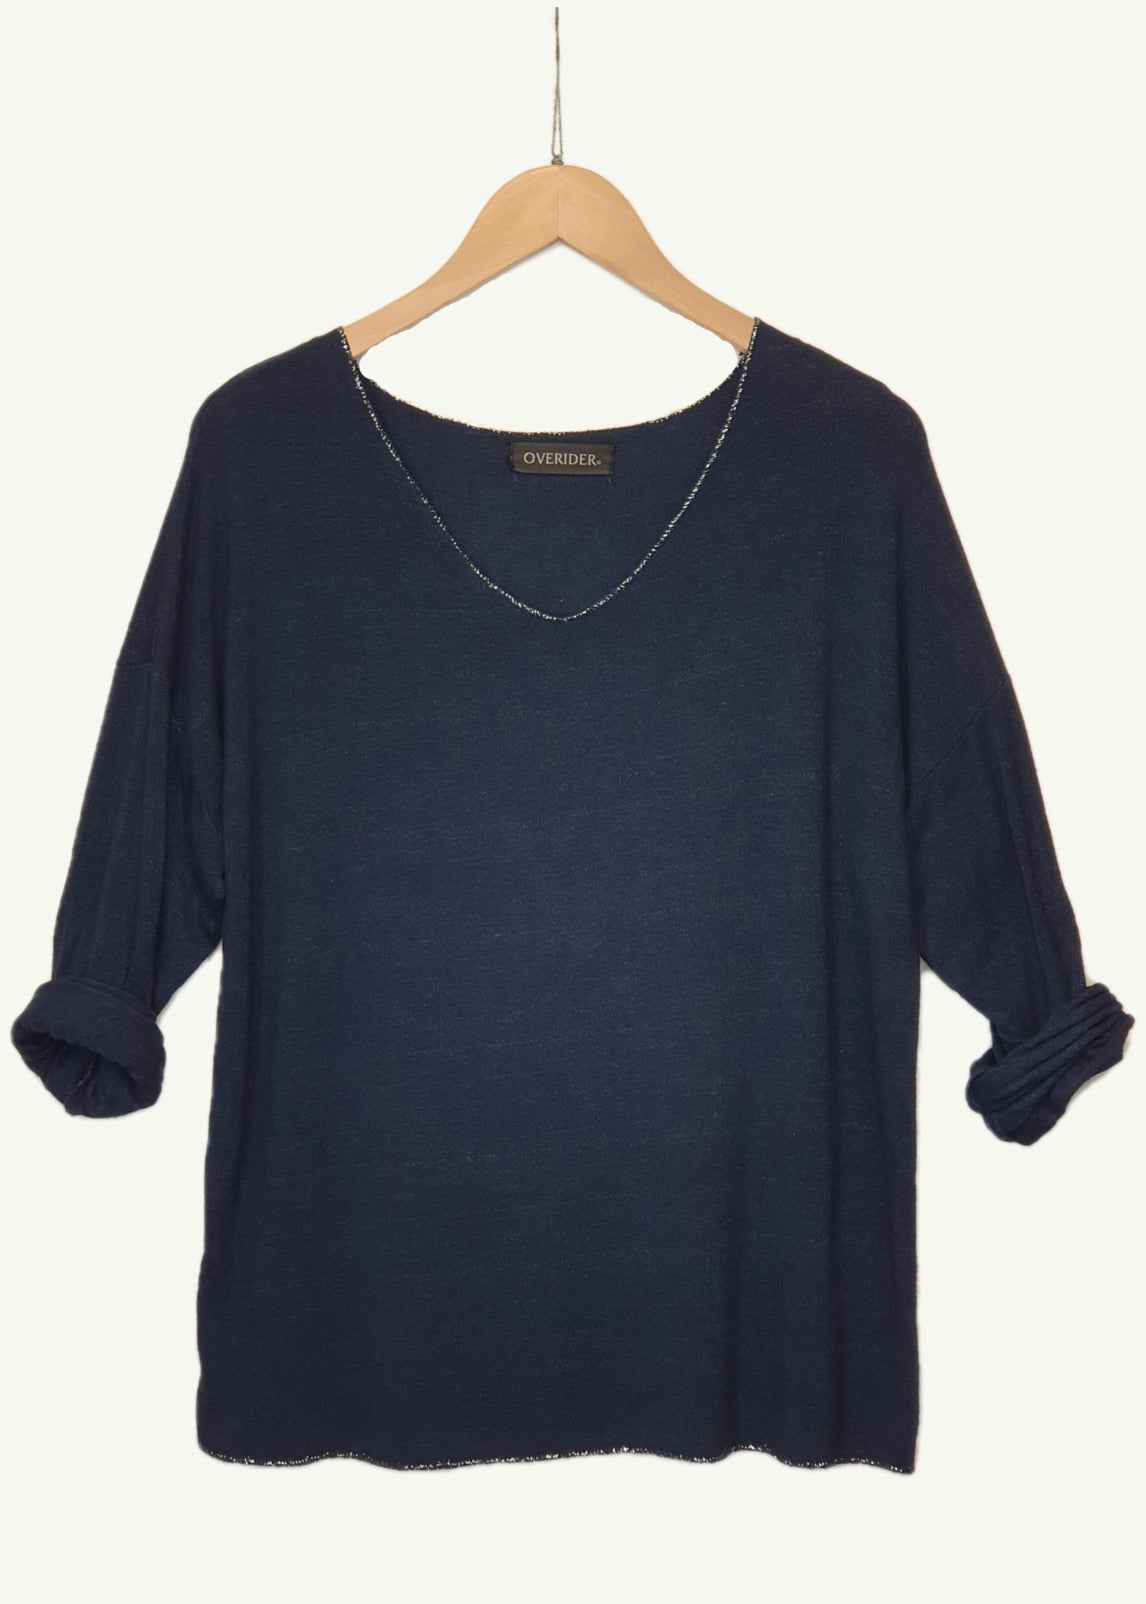 ELISE - 'V' Neck Sparkle  Knit Top - Navy